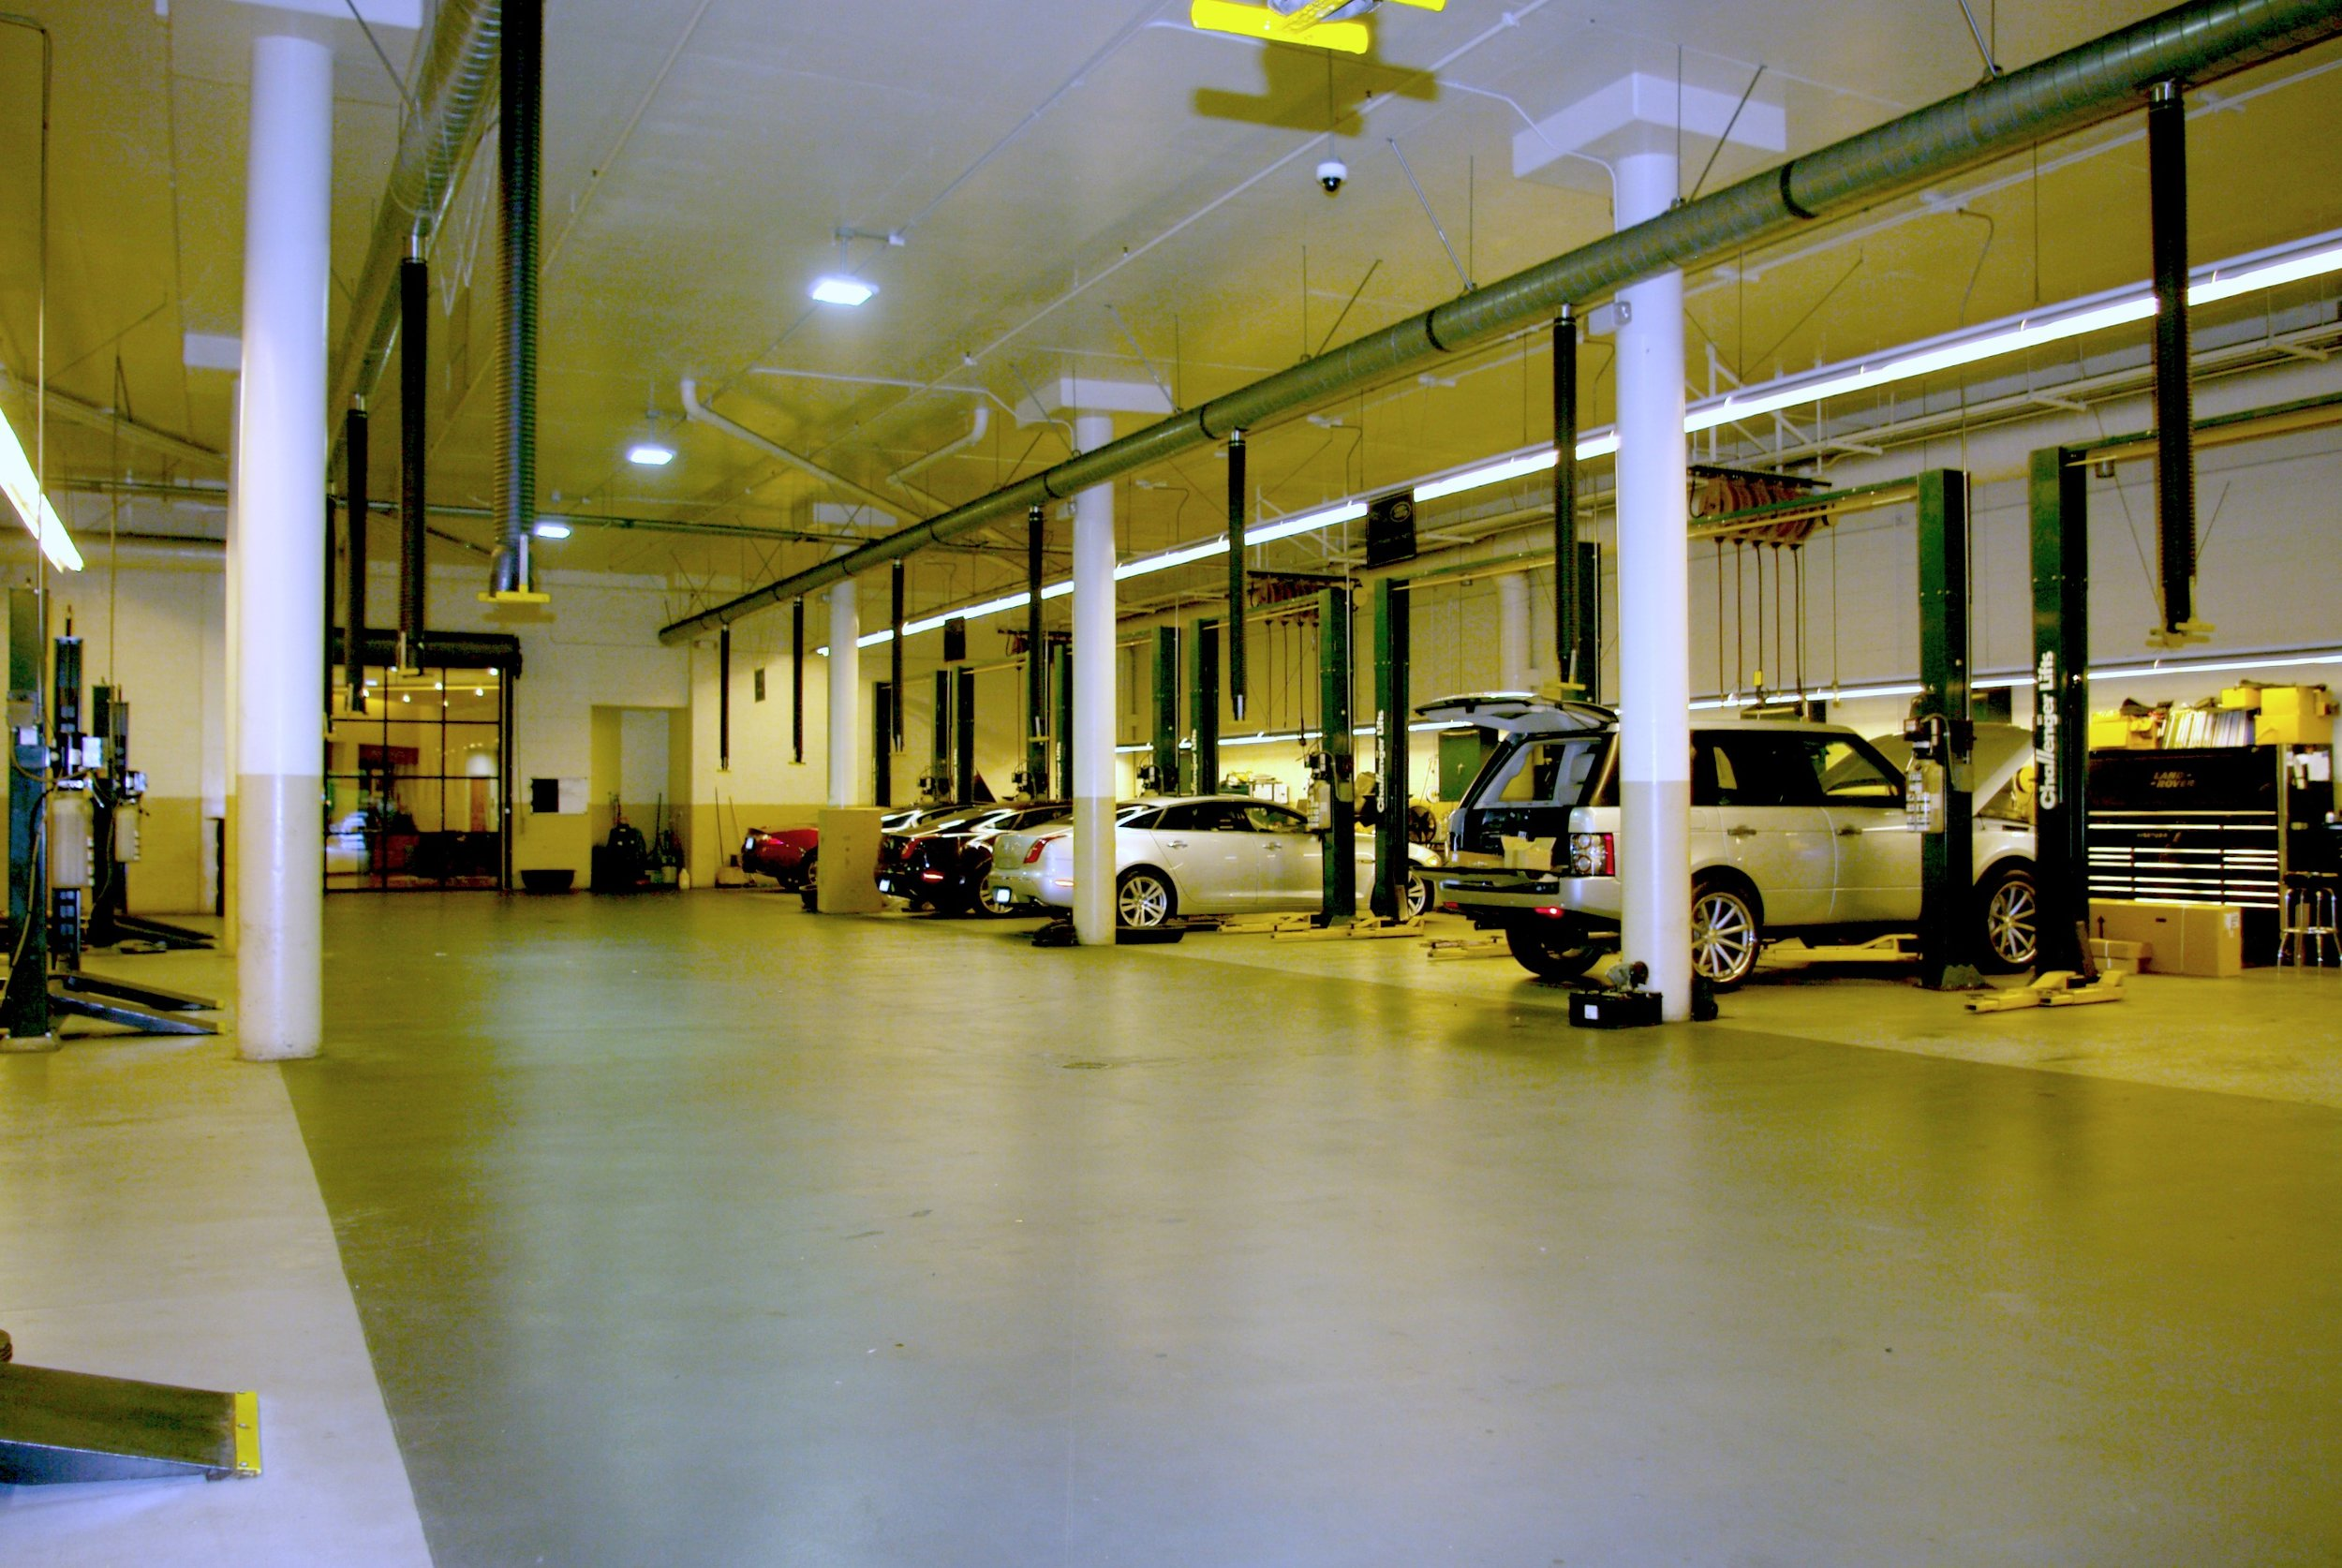 AFTER – LED lighting retrofit of the repair bays.